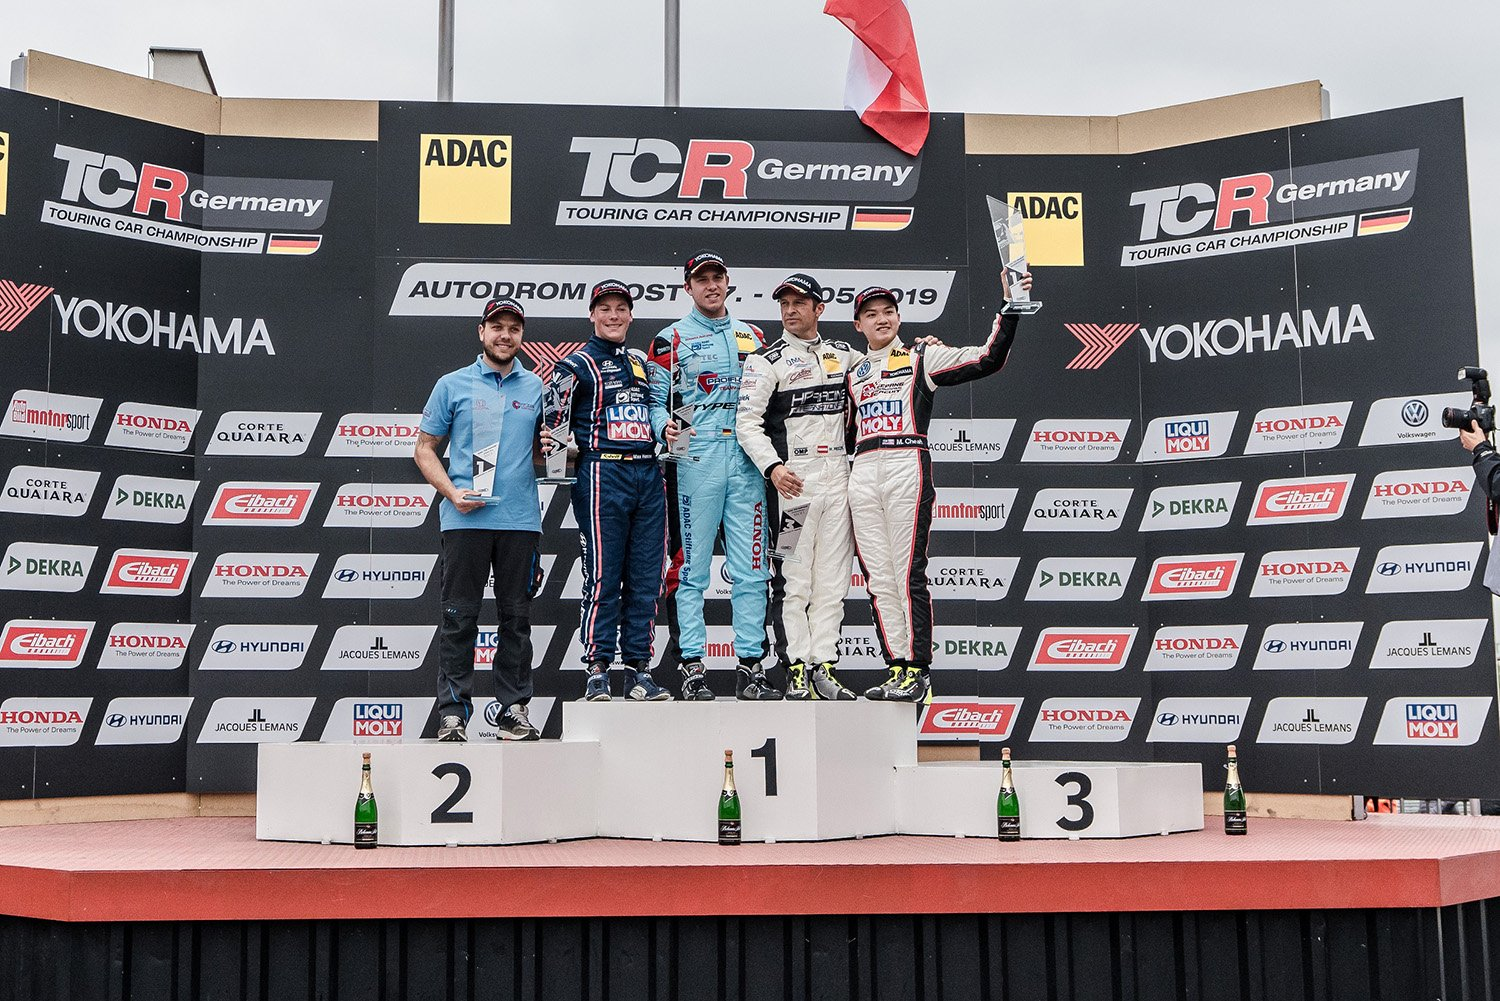 Mitchell Cheah takes Rookie victory in Autodrom Most for Volkswagen Team Oettinger